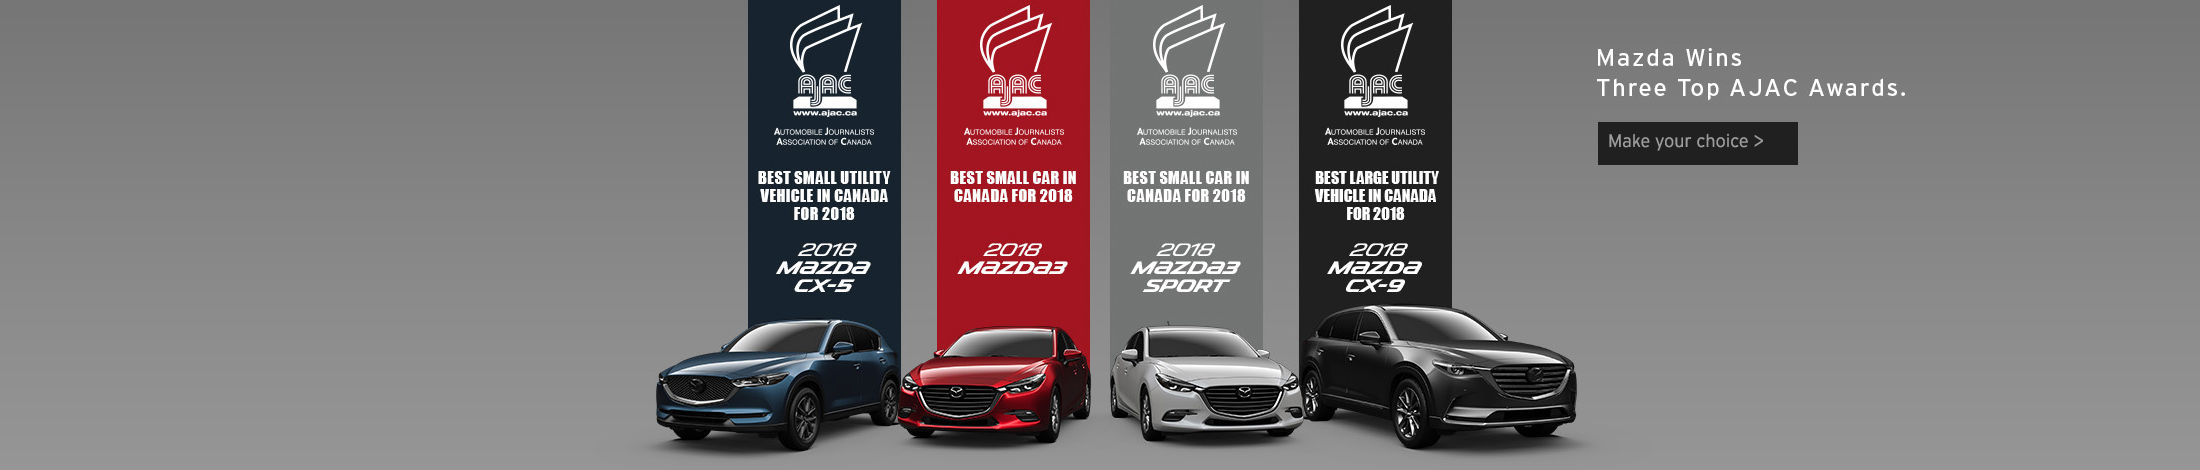 Mazda wins three top Ajac awards